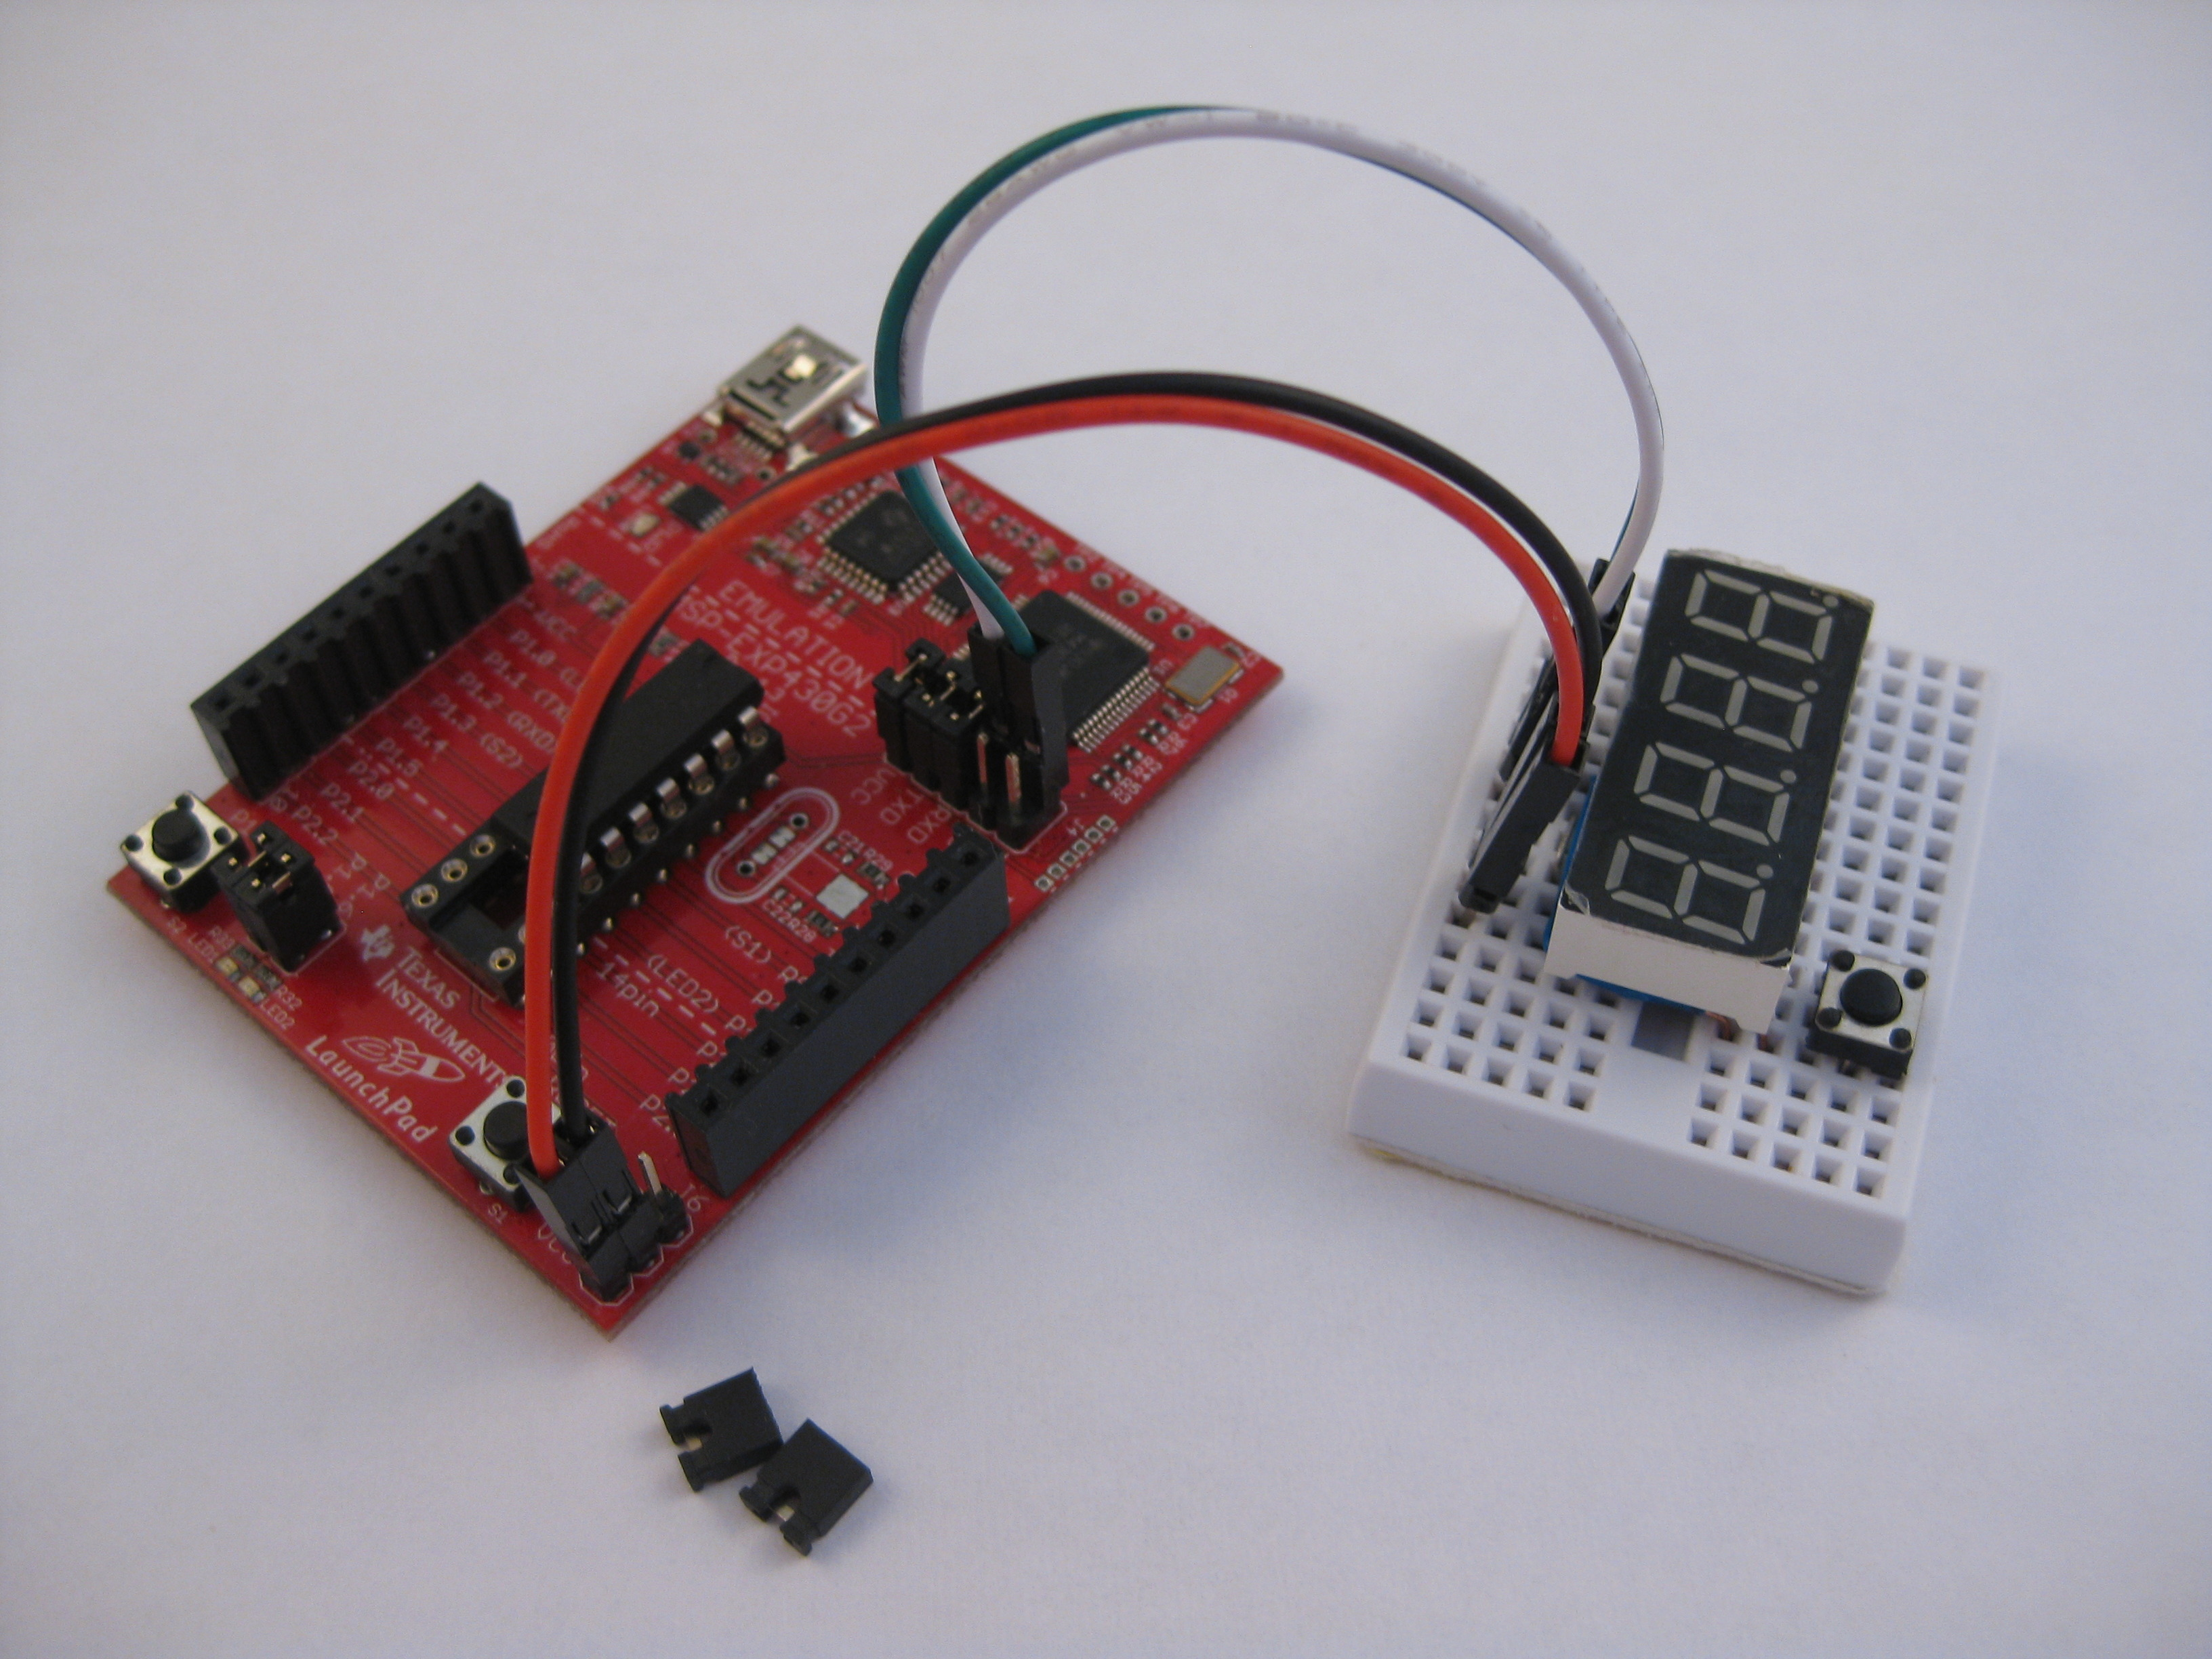 Picture of Flashing the Firmware